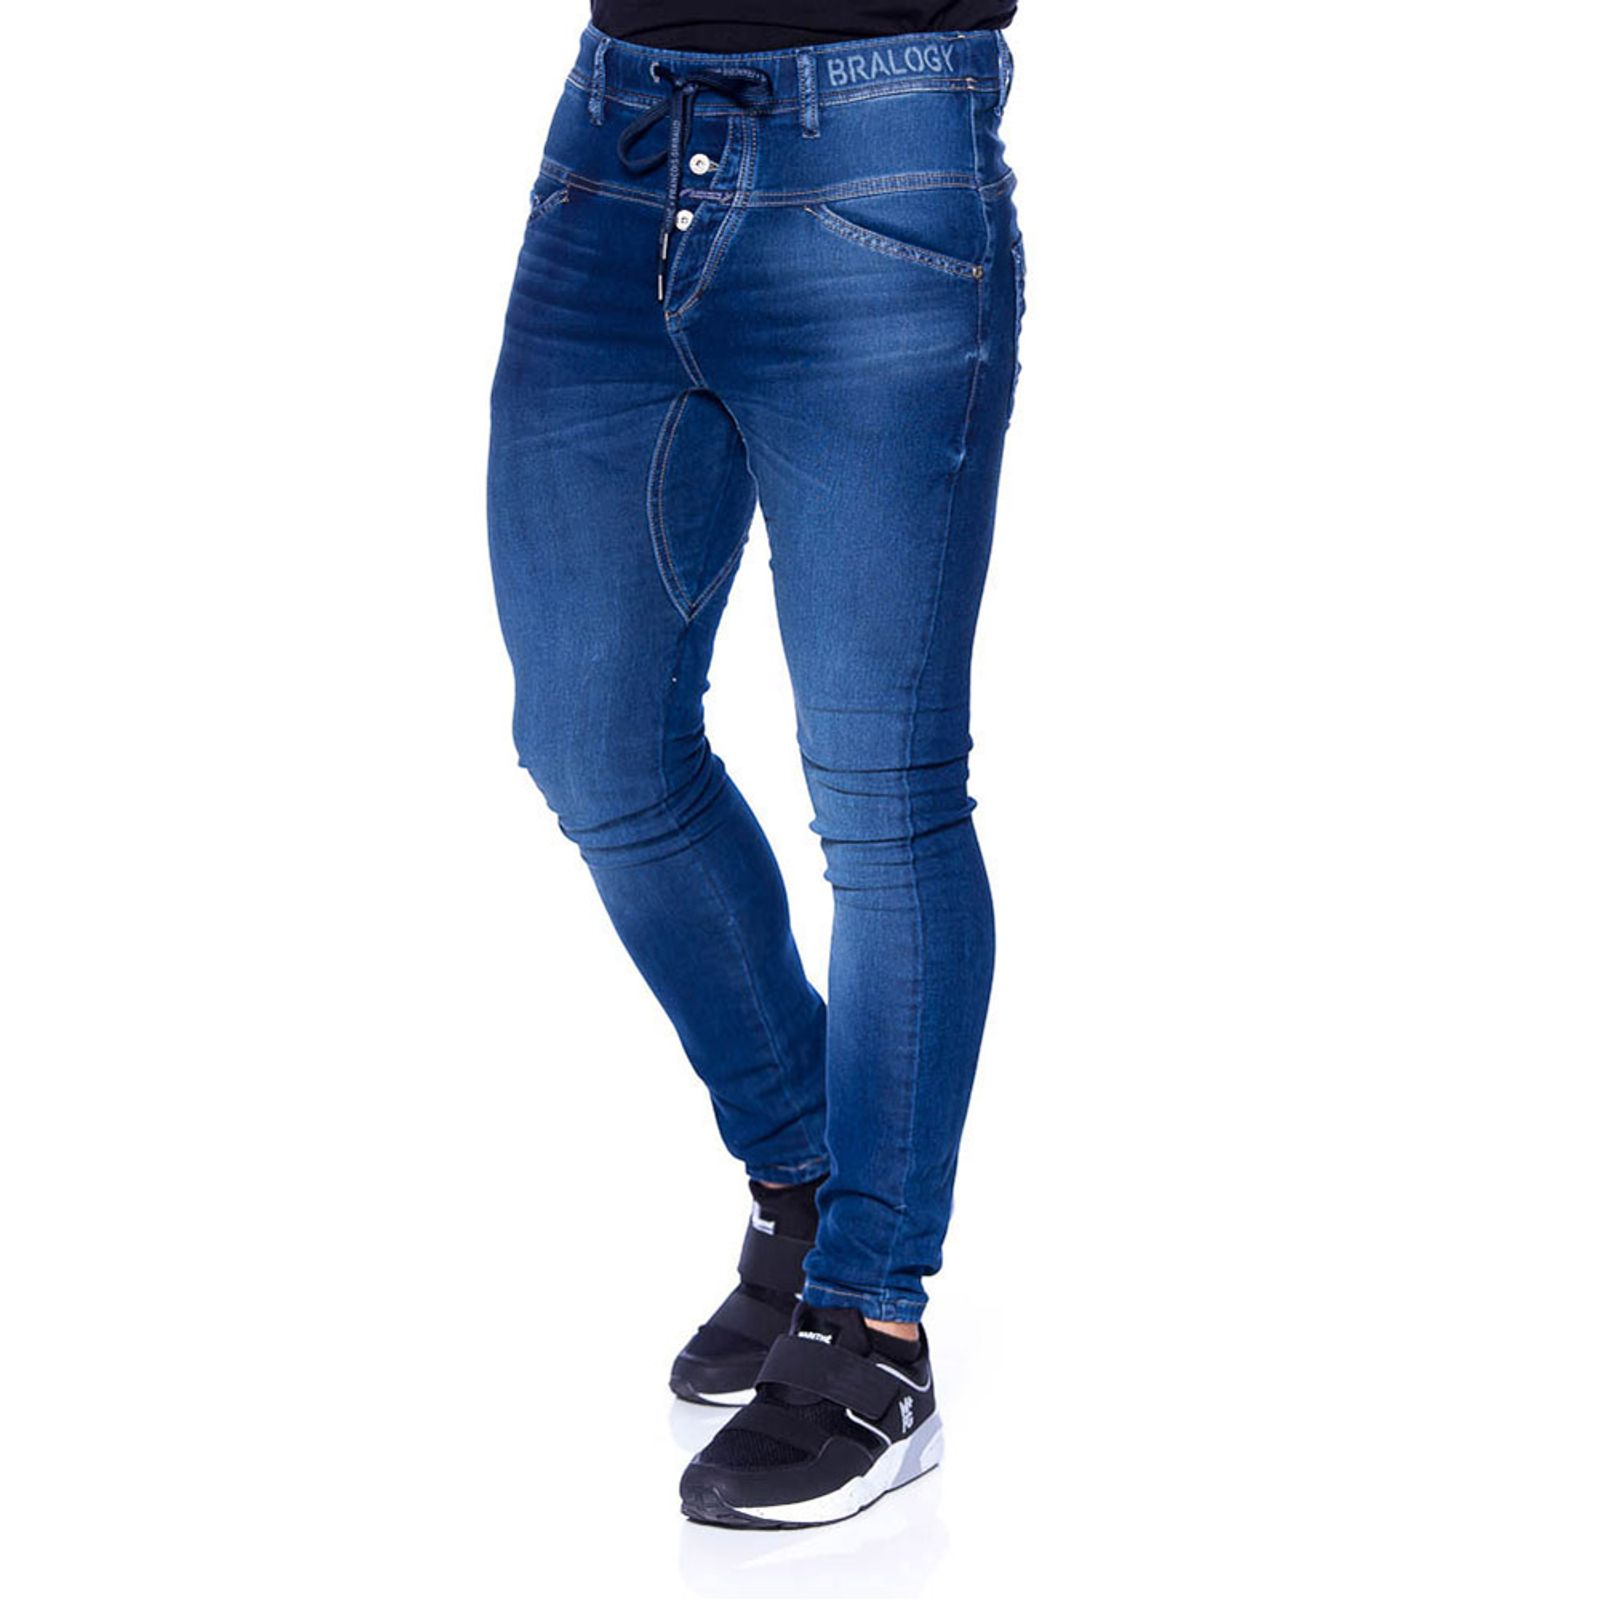 Jean Para Hombre Jean M Bralogy Marithe Francois Girbaud Girbaud Colombia